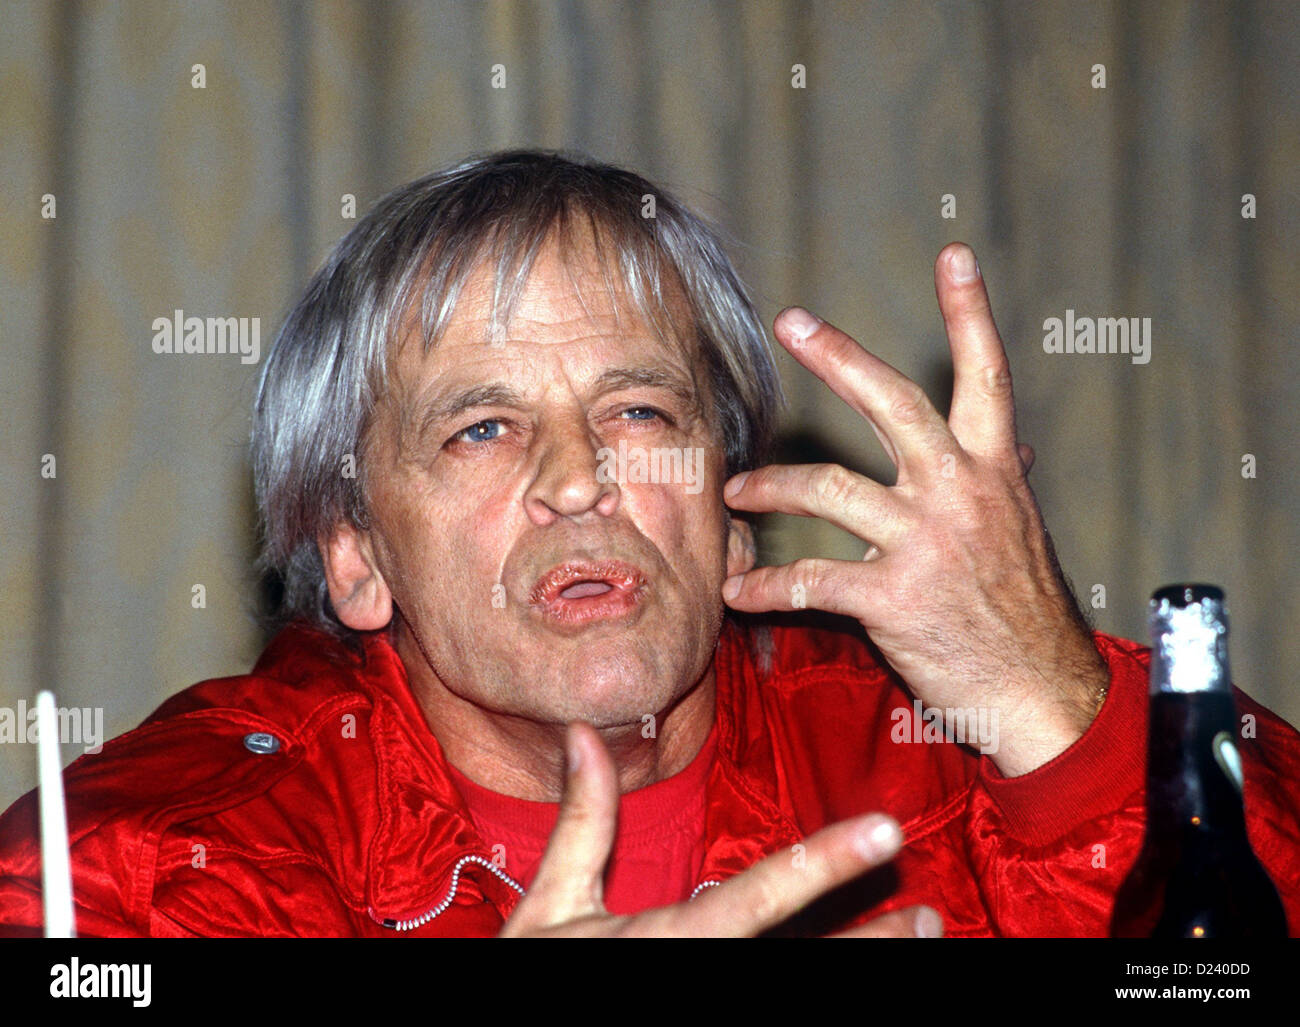 (dpa files) - German actor Klaus Kinski speaks about his film 'Kommando Leopard' ('Commando Leopard', 1985) during a press conference in Hamburg, 22 October 1985. An 'enfant terrible' of the film industry, his films include 'Aguirre, der Zorn Gottes' ('Aguirre: The Wrath of God') and 'Nosferatu: Phantom der Nacht' ('Nosferatu the Vampire'). Kinski was born on 18 October 1926 in Danzig, Germany (now Gdansk, Poland) under the name of Nikolaus Guenther Nakszynski and died on 23 November 1991 in Lagunitas, California, of a heart attack. Stock Photo